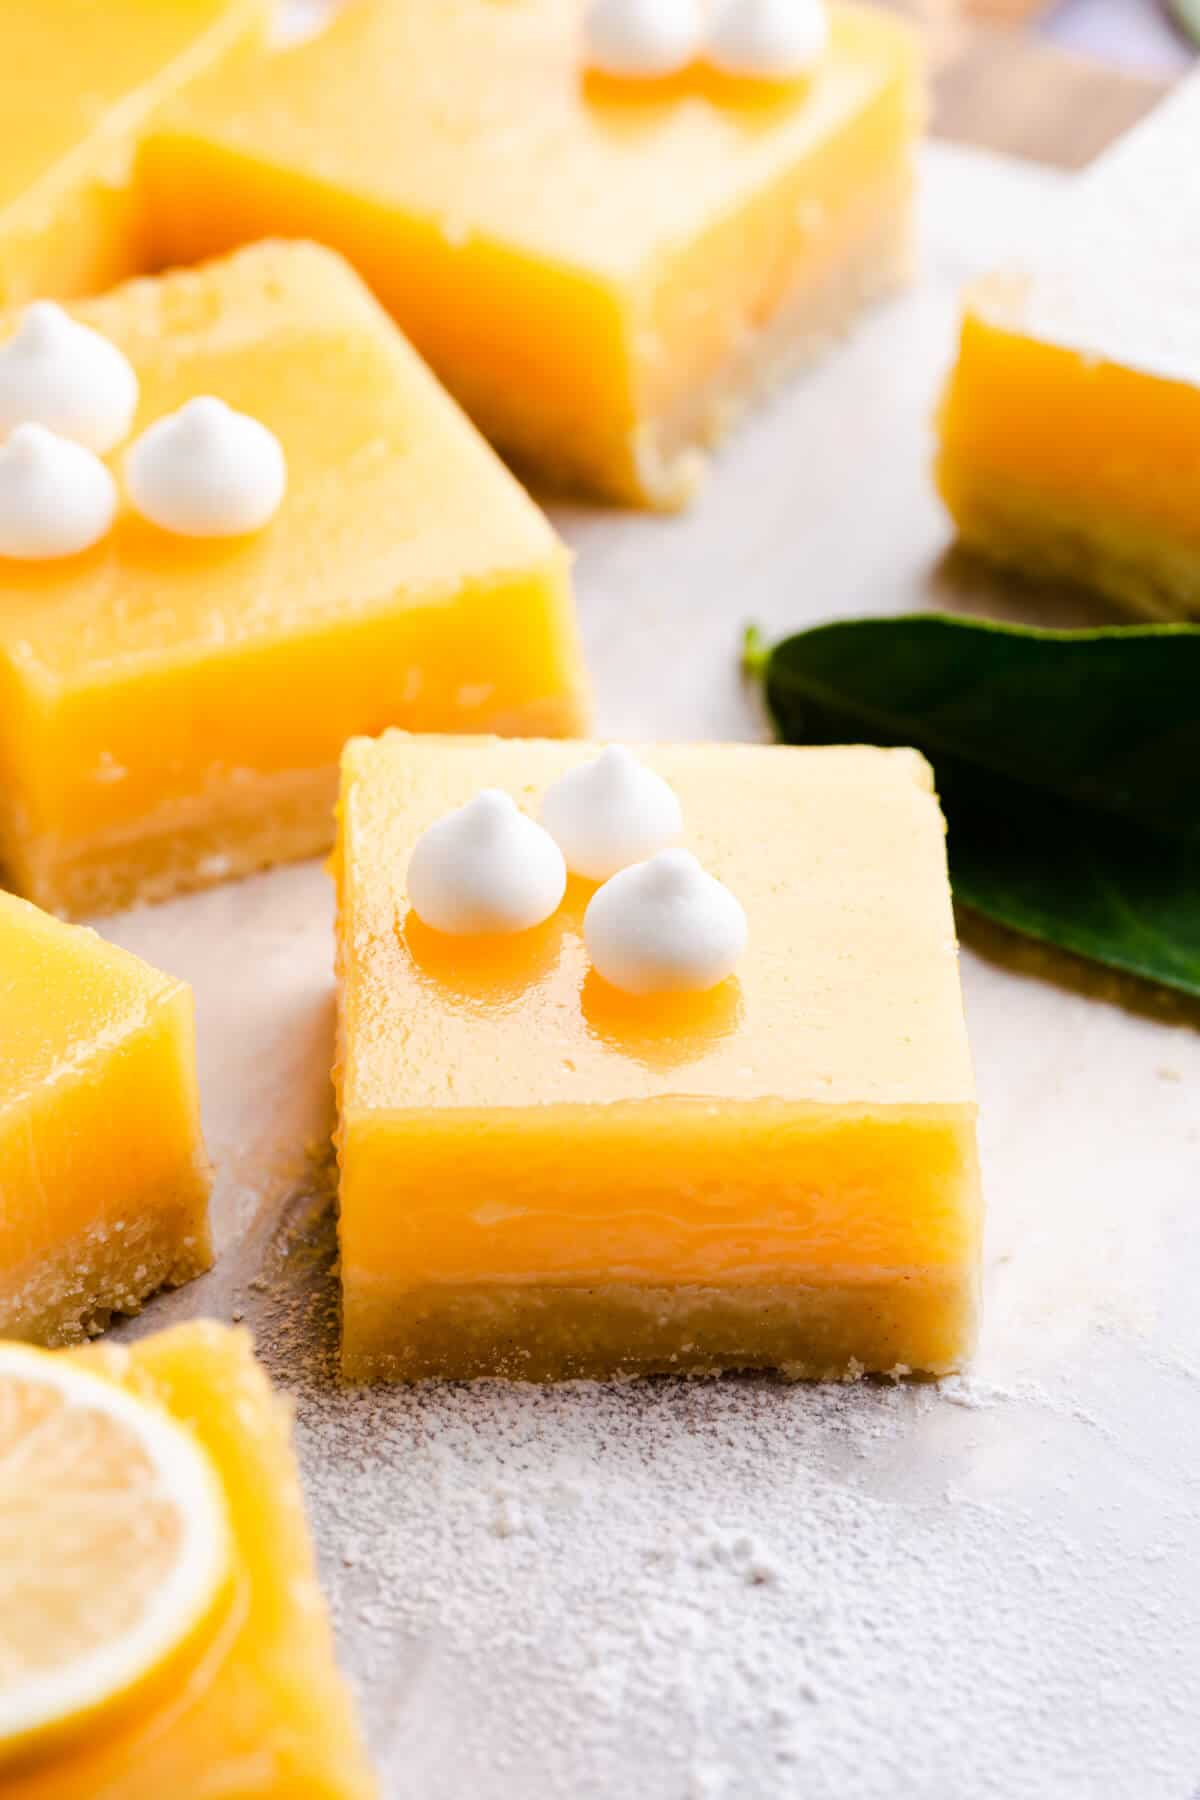 45 degree angle close up at a square lemon curd slice with mini meringues on top